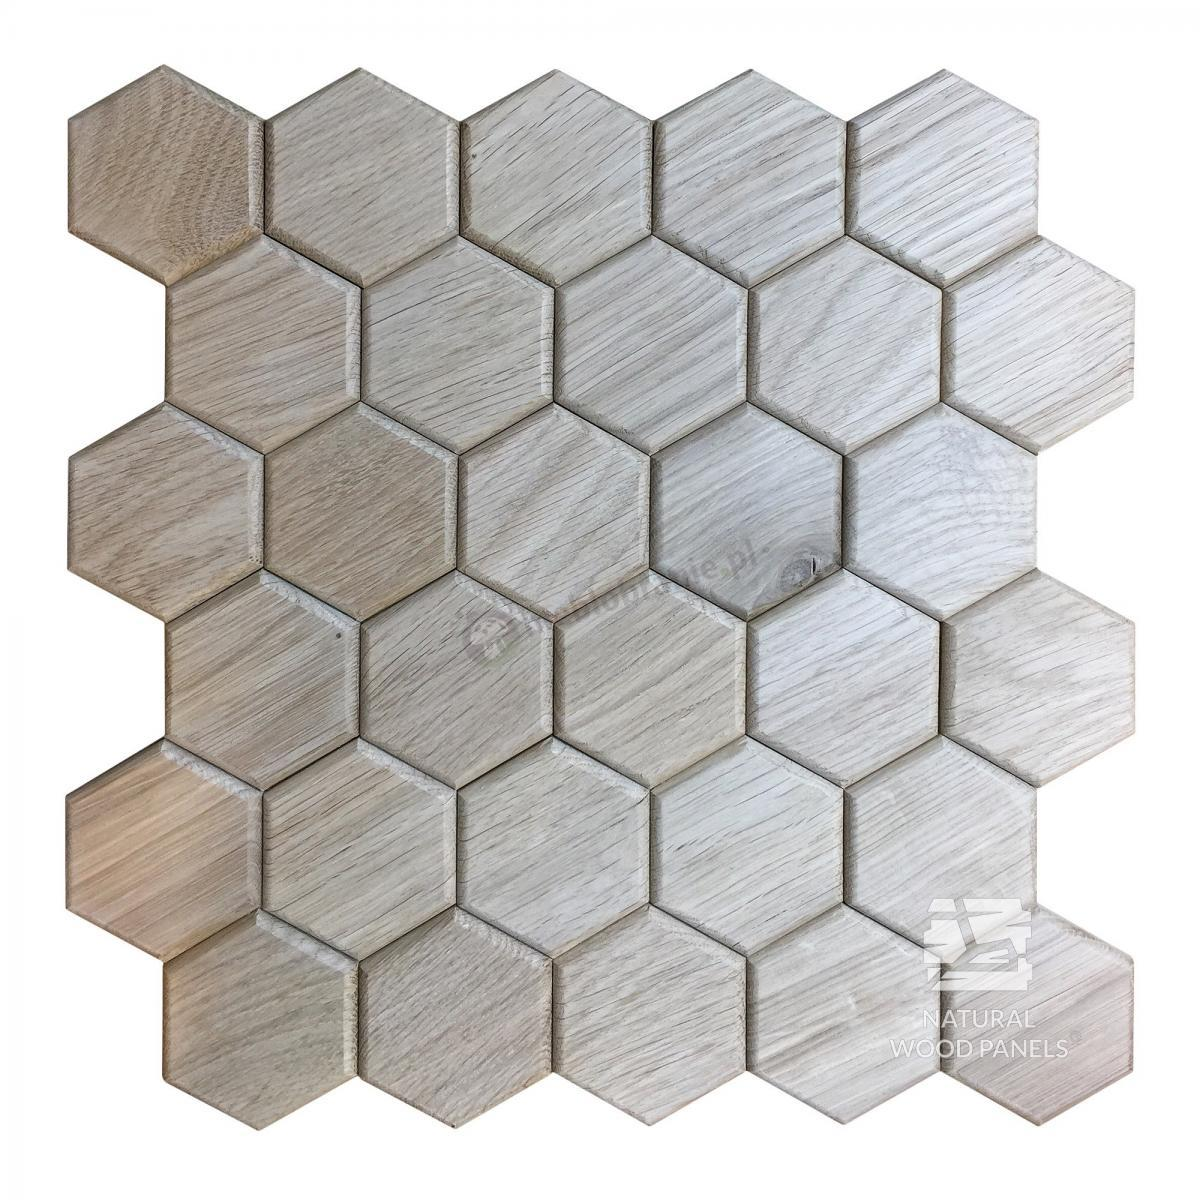 Dąb natur Hexagon series Natural Wood Panels